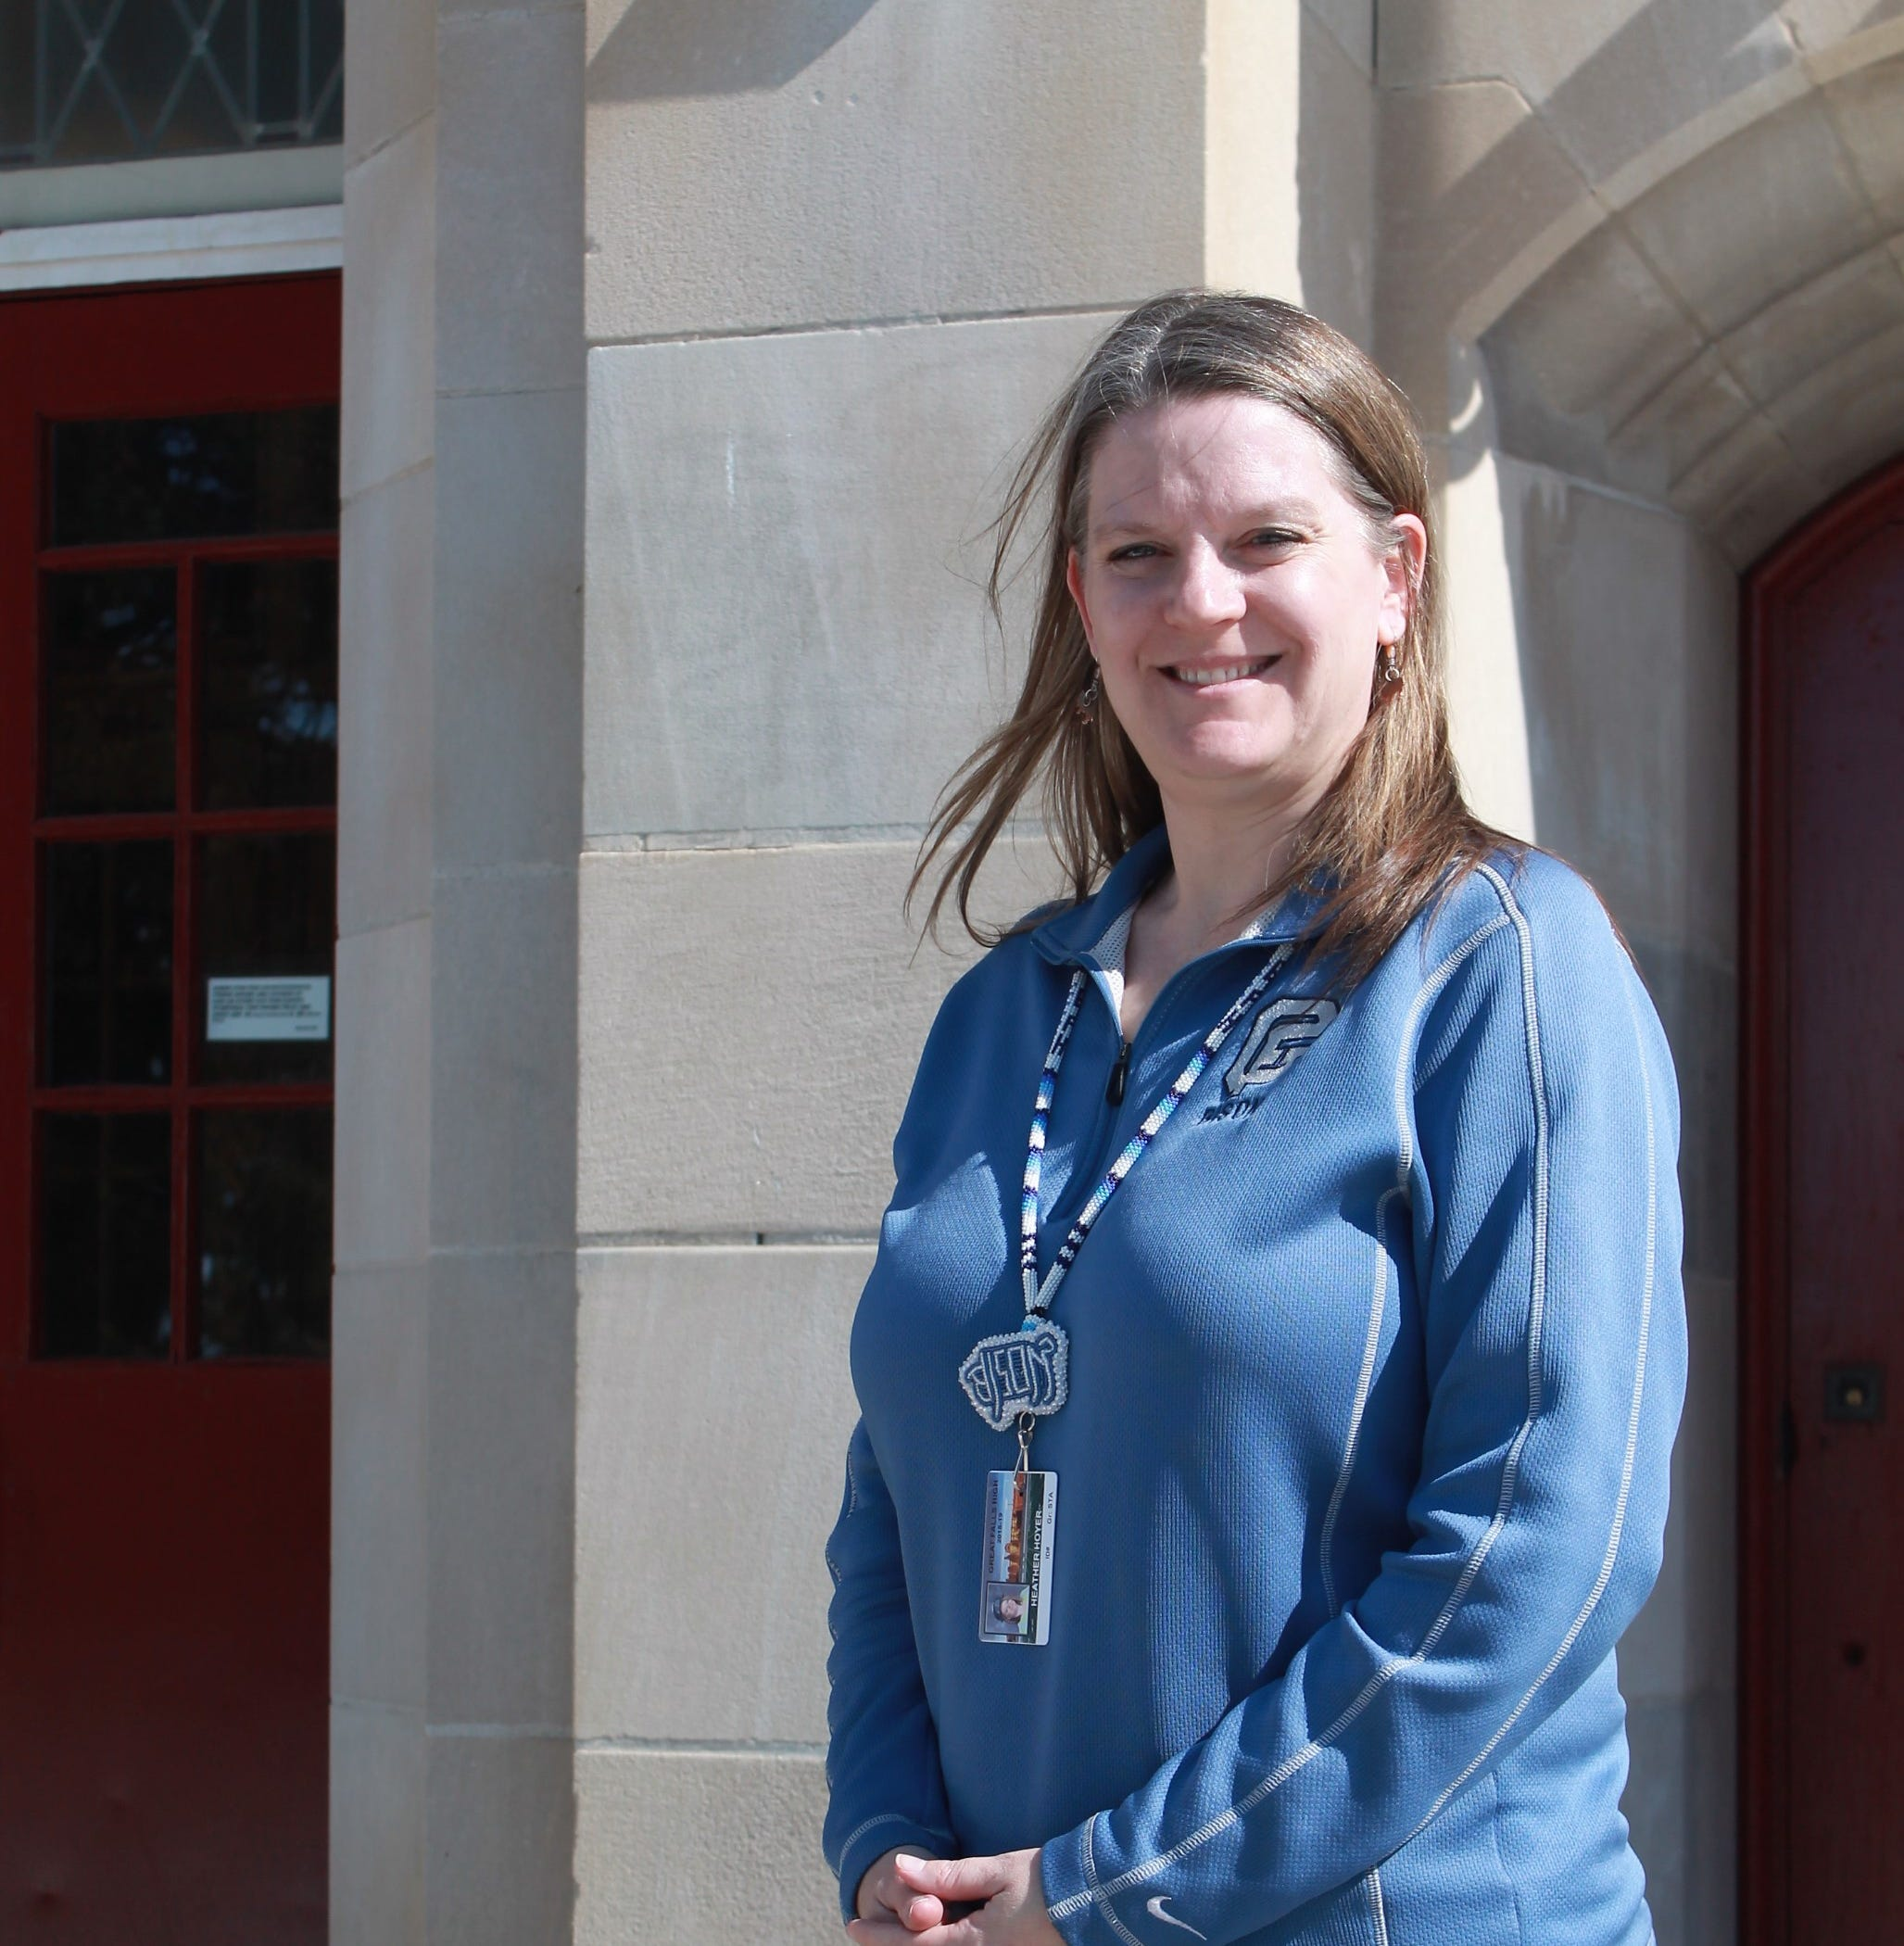 Heather Hoyer to succeed Tom Moore as secondary assistant superintendent of GFPS